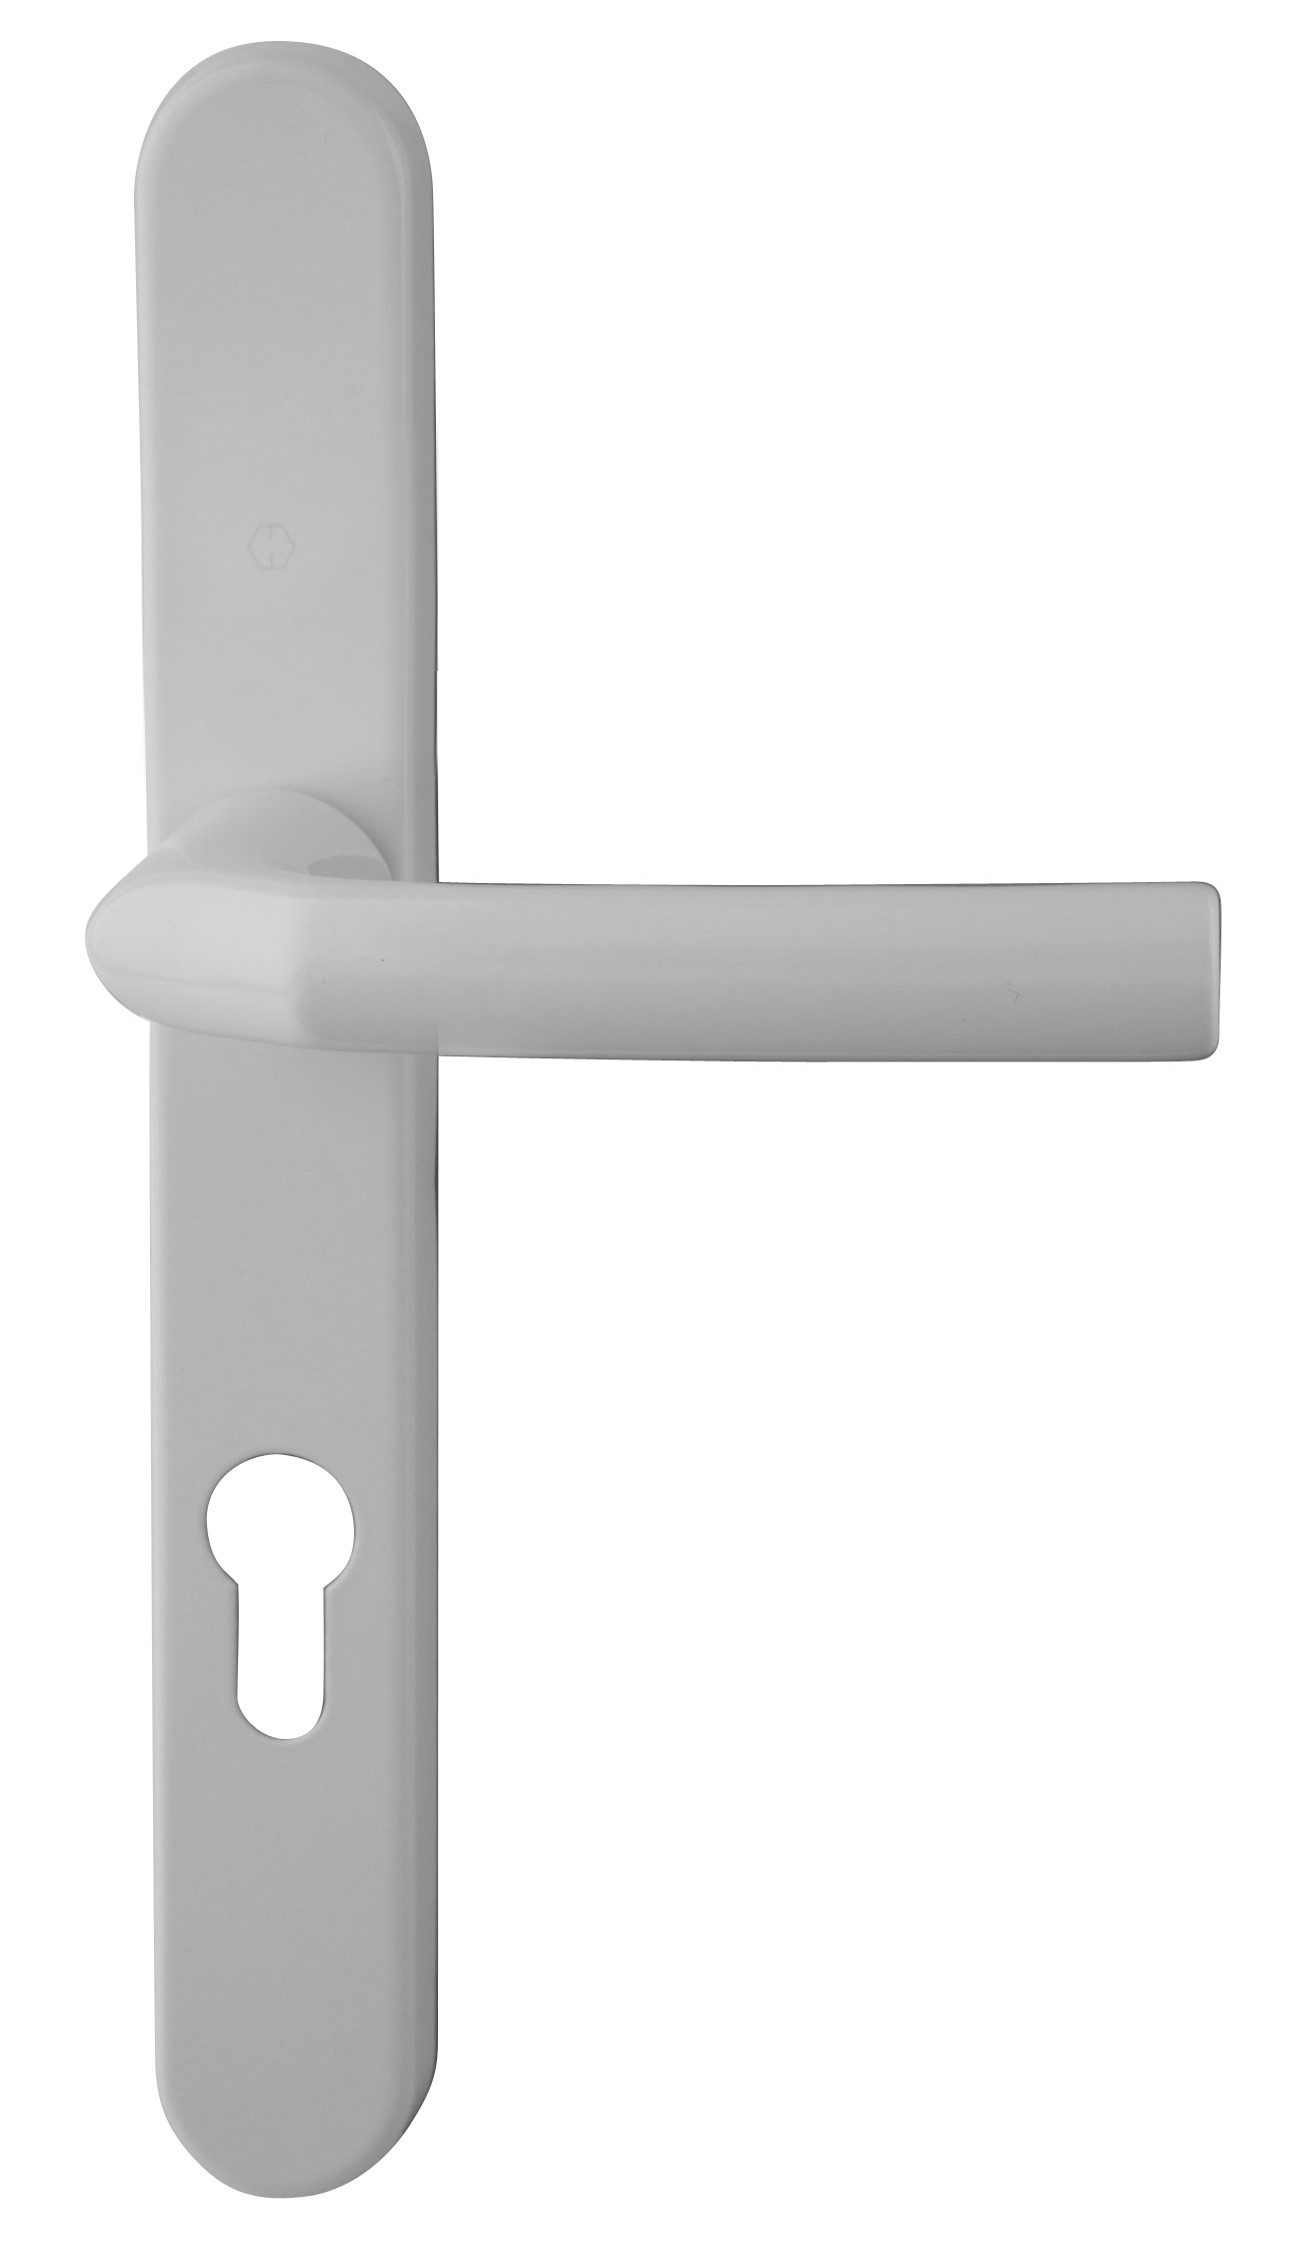 Hoppe Birmingham Long Backplate 3810N White 92mm Centre Door Handle